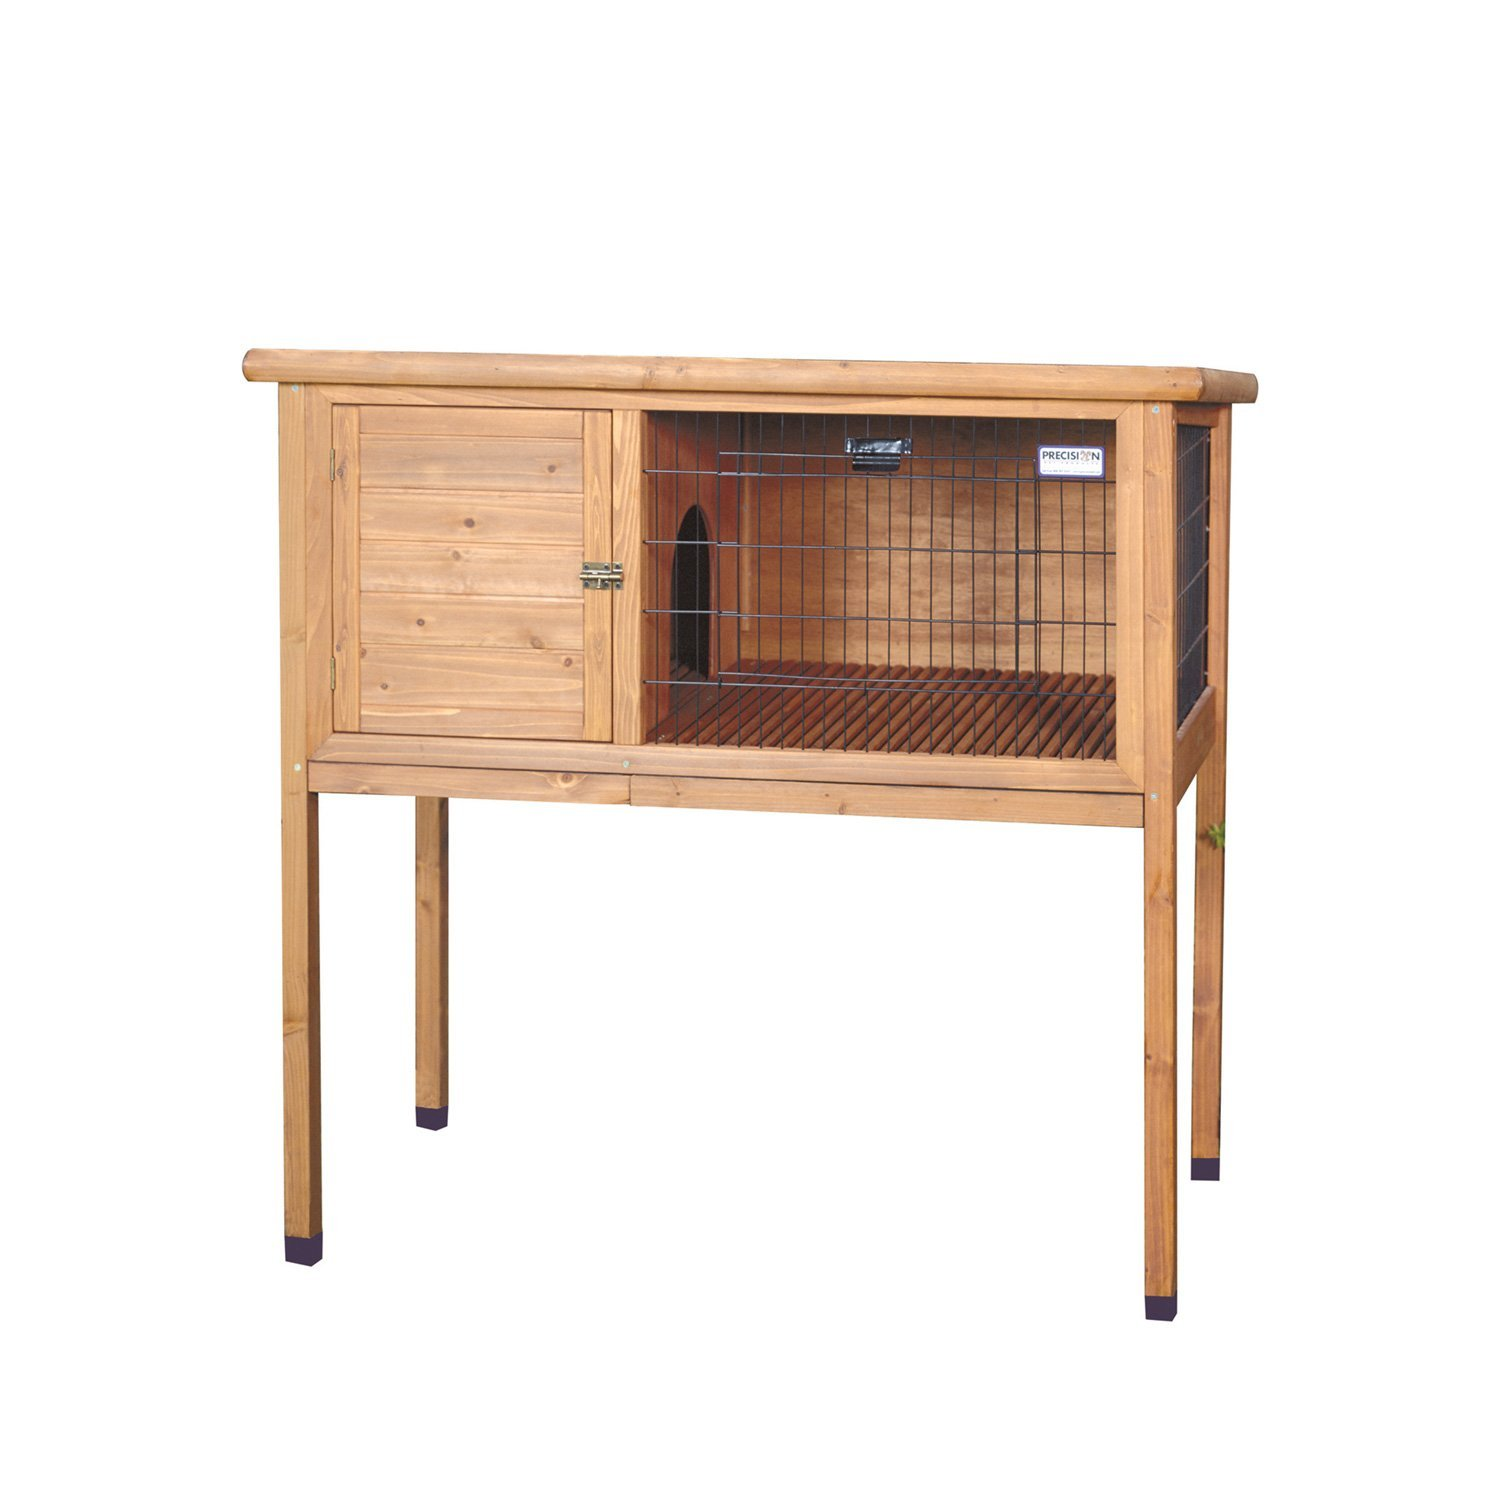 Precision Pet Extreme Rabbit Shack Large 48 in. x 24 in. x 46 in.